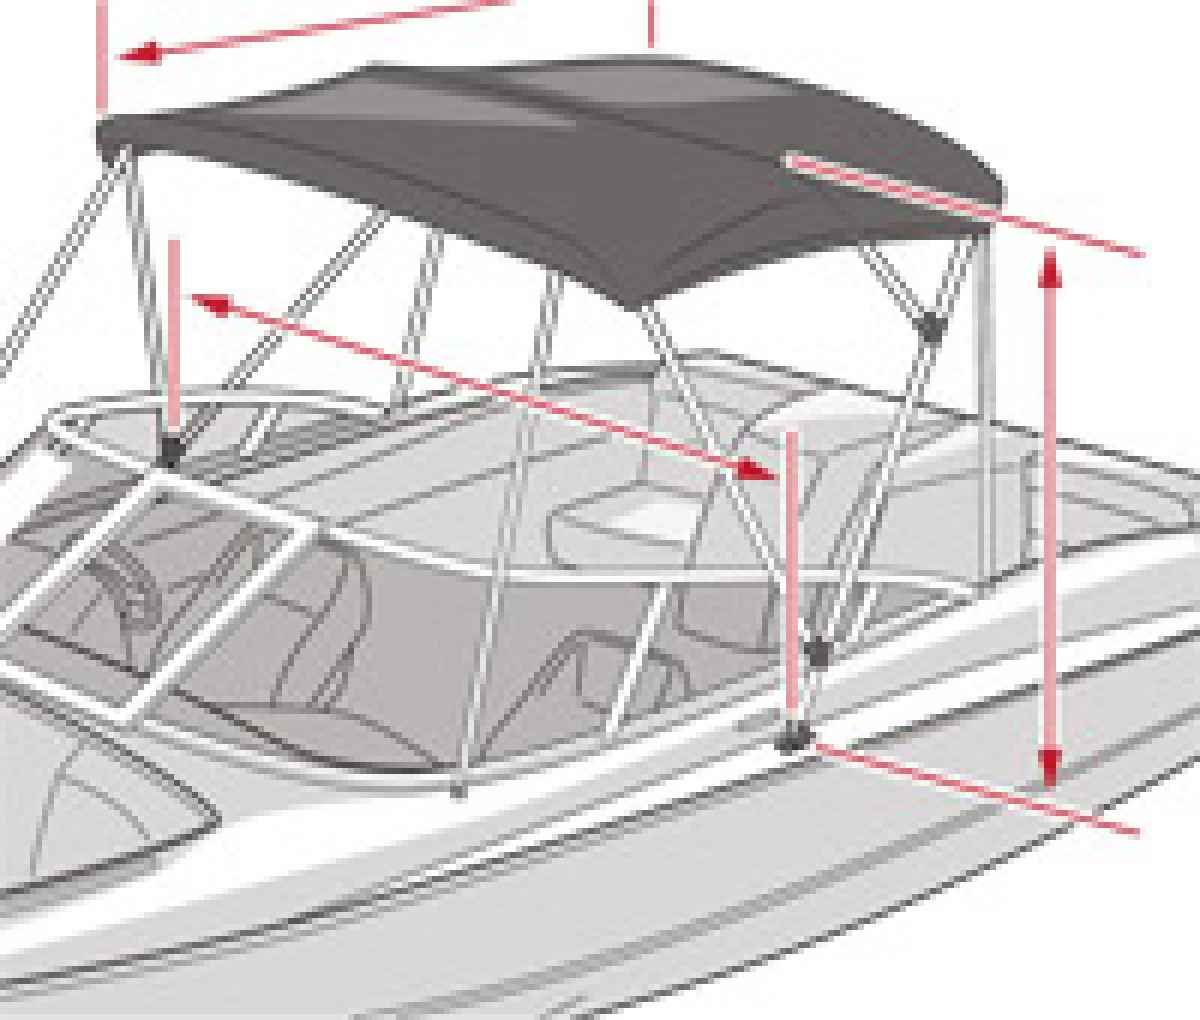 Putting A Bimini Top On Your Boat Is An Easy Diy Project